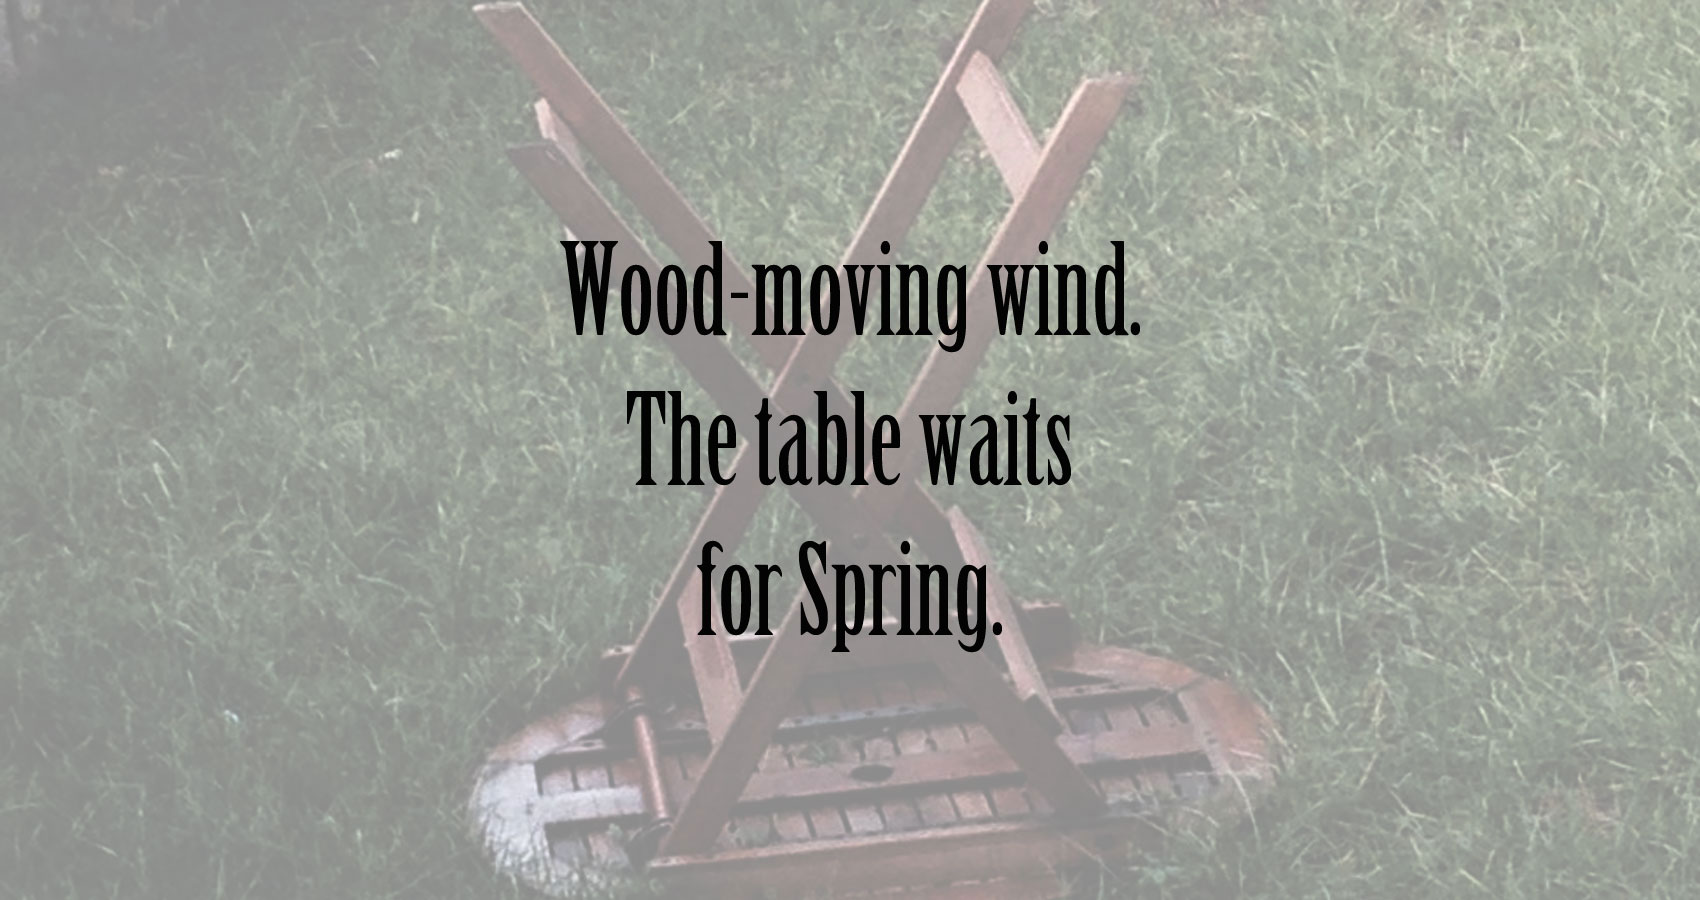 Wood-moving Wind at Spillwords.com